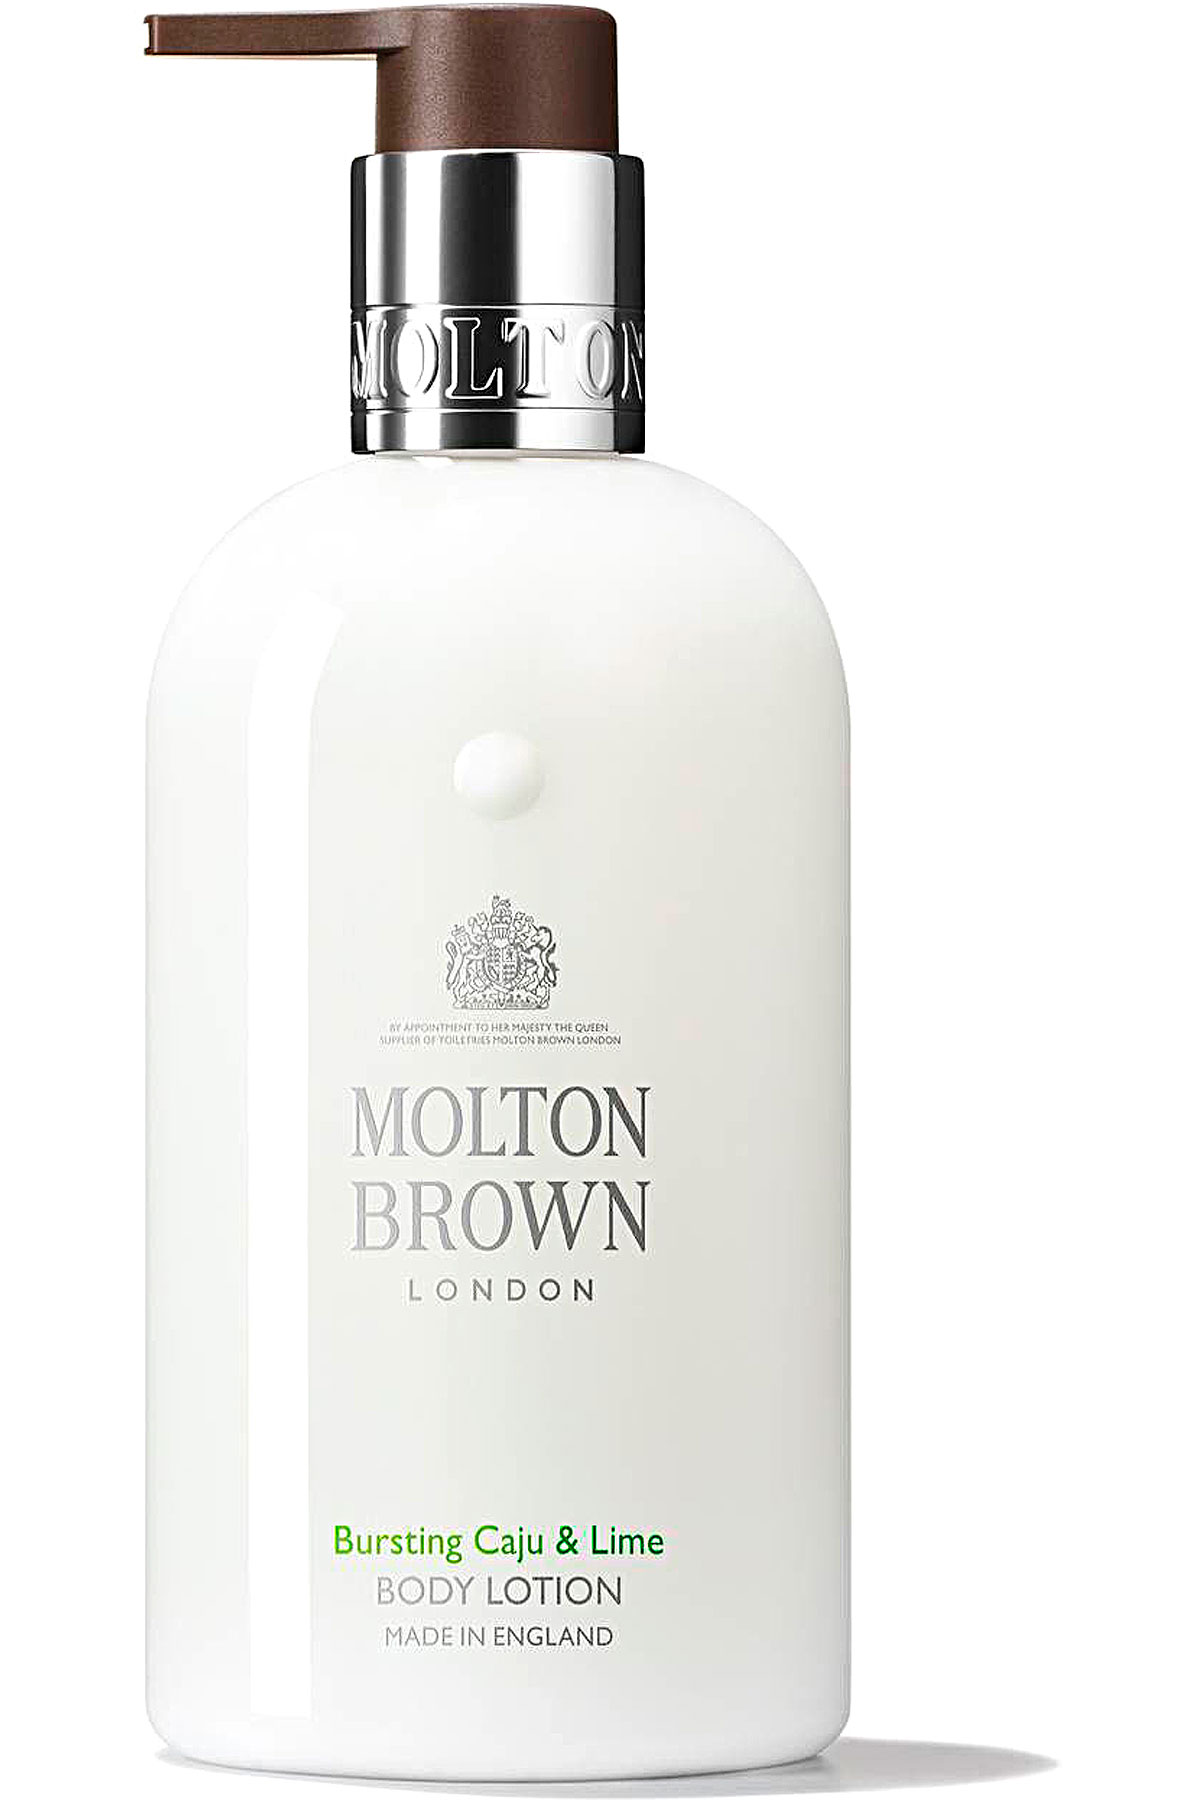 Molton Brown Beauty for Men, Bursting Caju & Lime - Body Lotion - 300 Ml, 2019, 300 ml